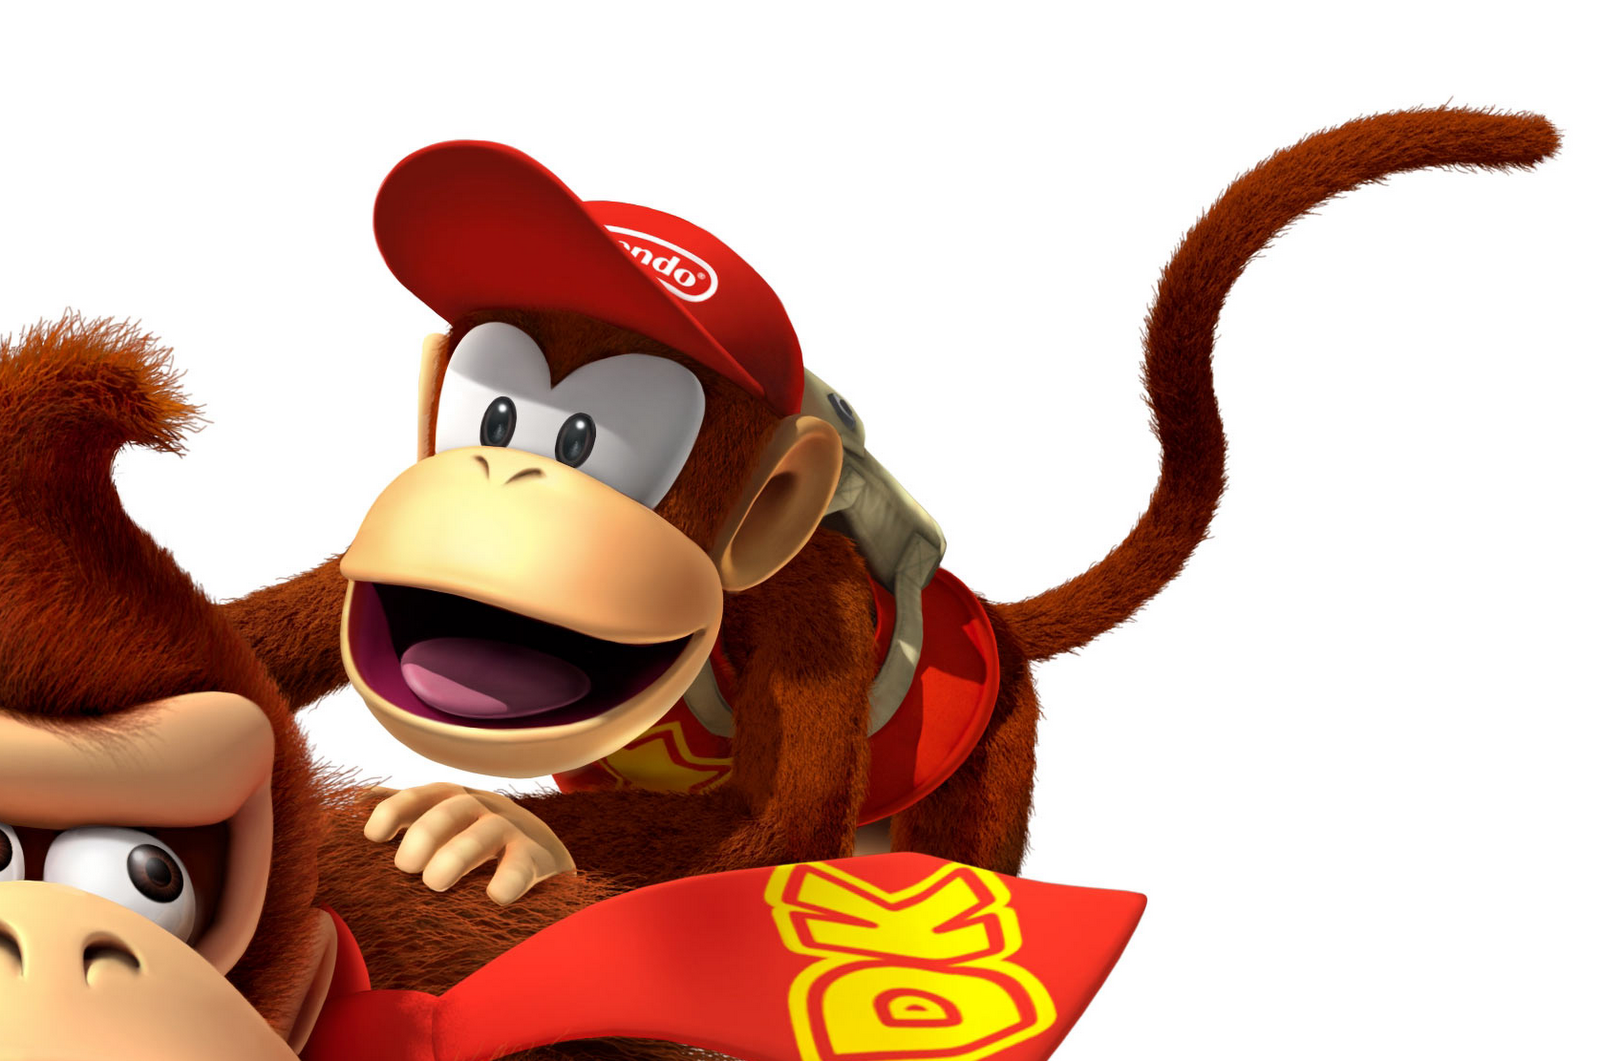 nintendo files for a diddy kong trademark in europe